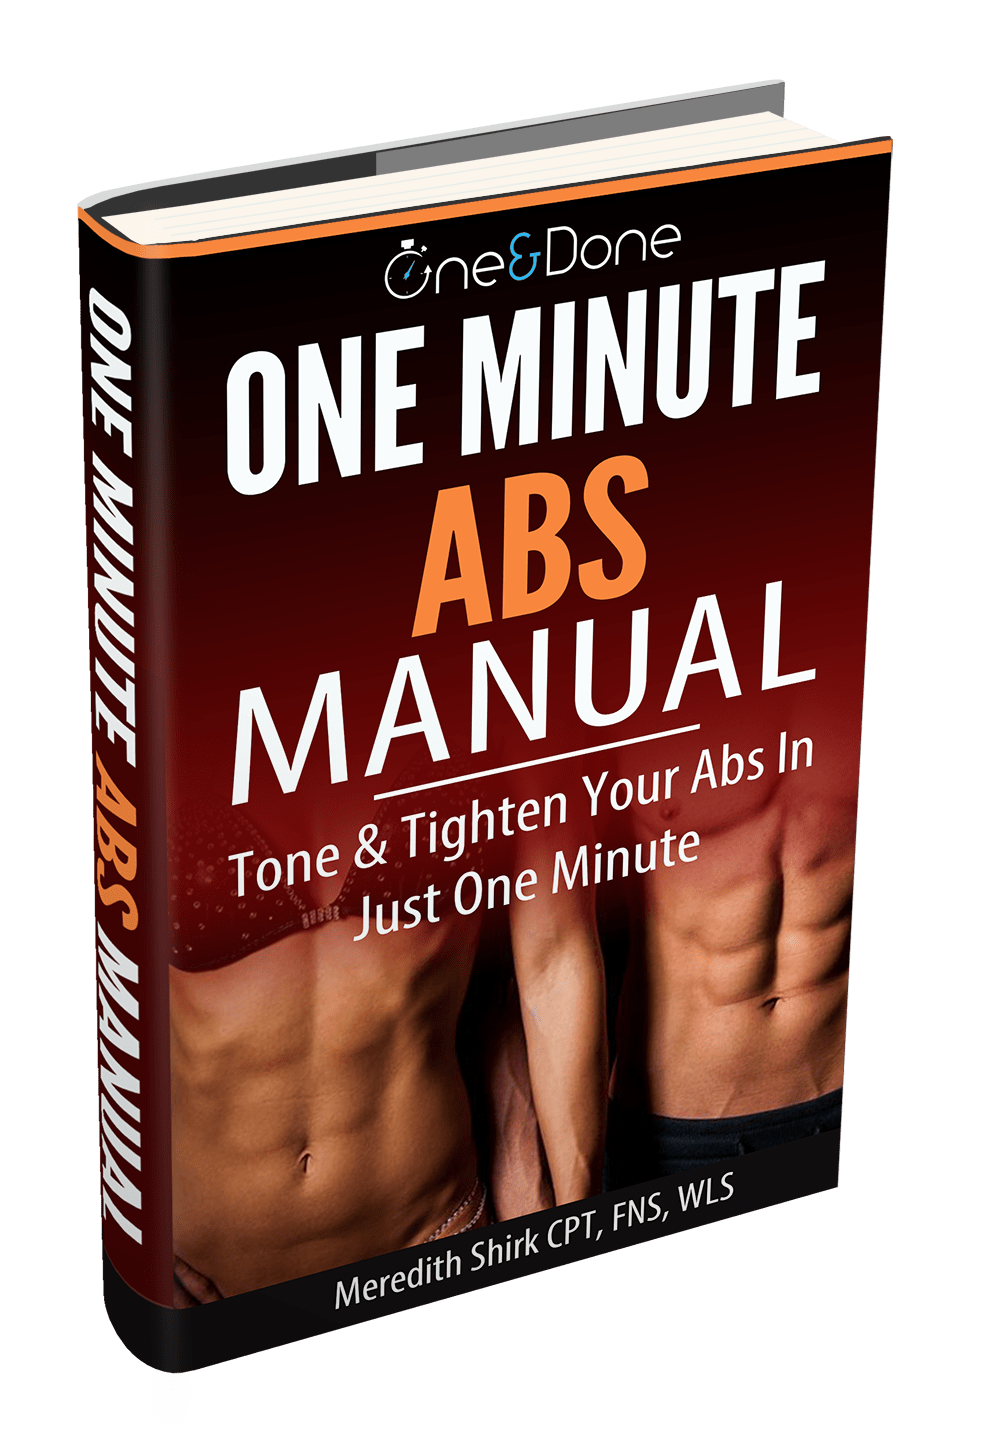 One Minute Abs Manual